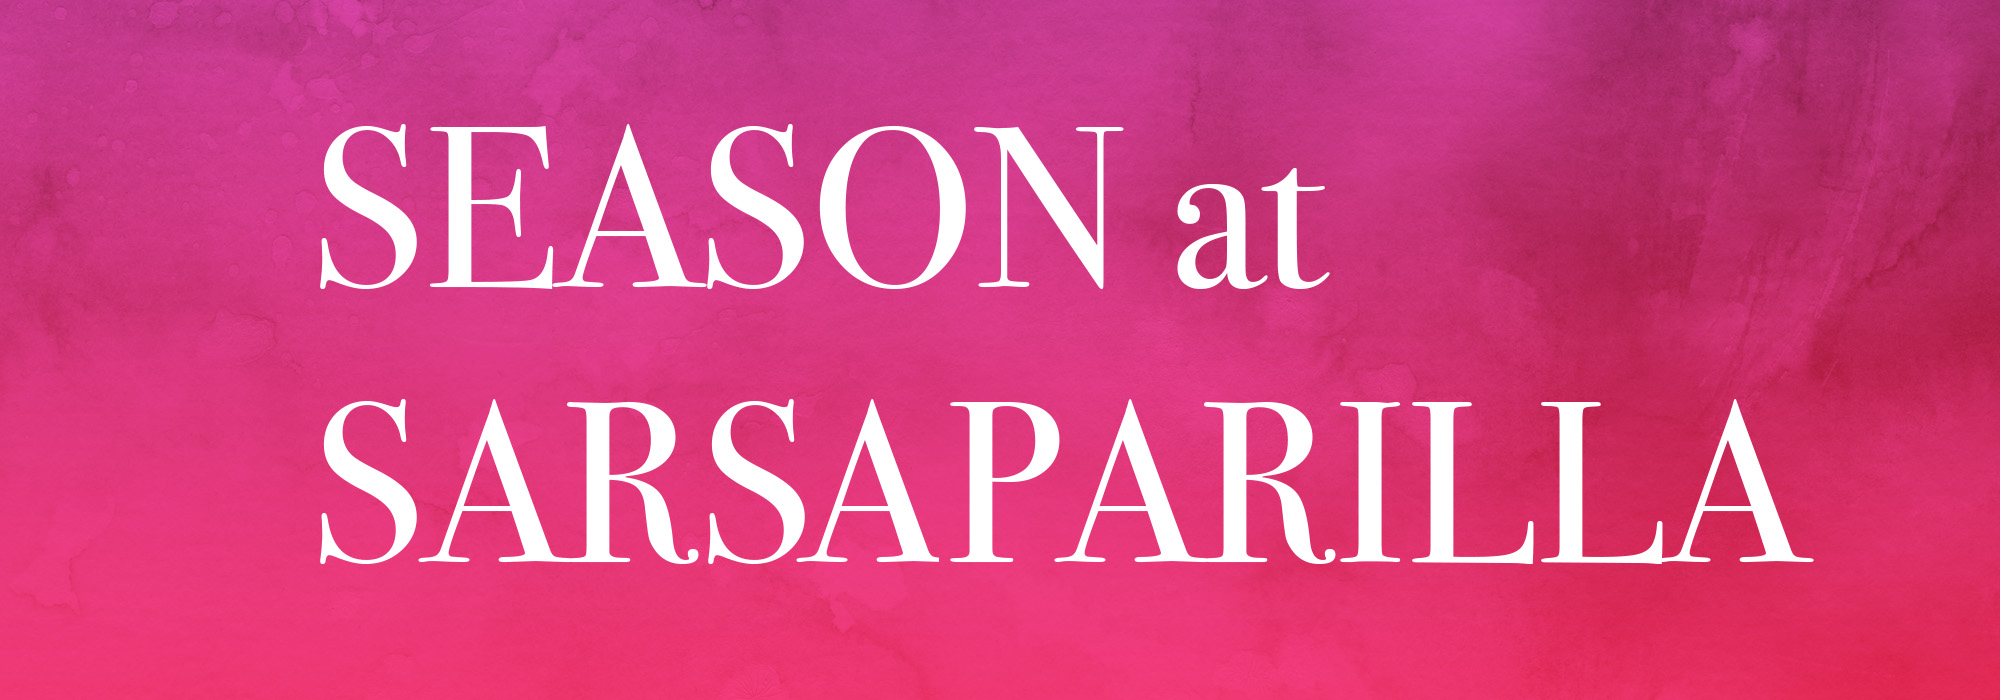 season at sarsaparilla web banner